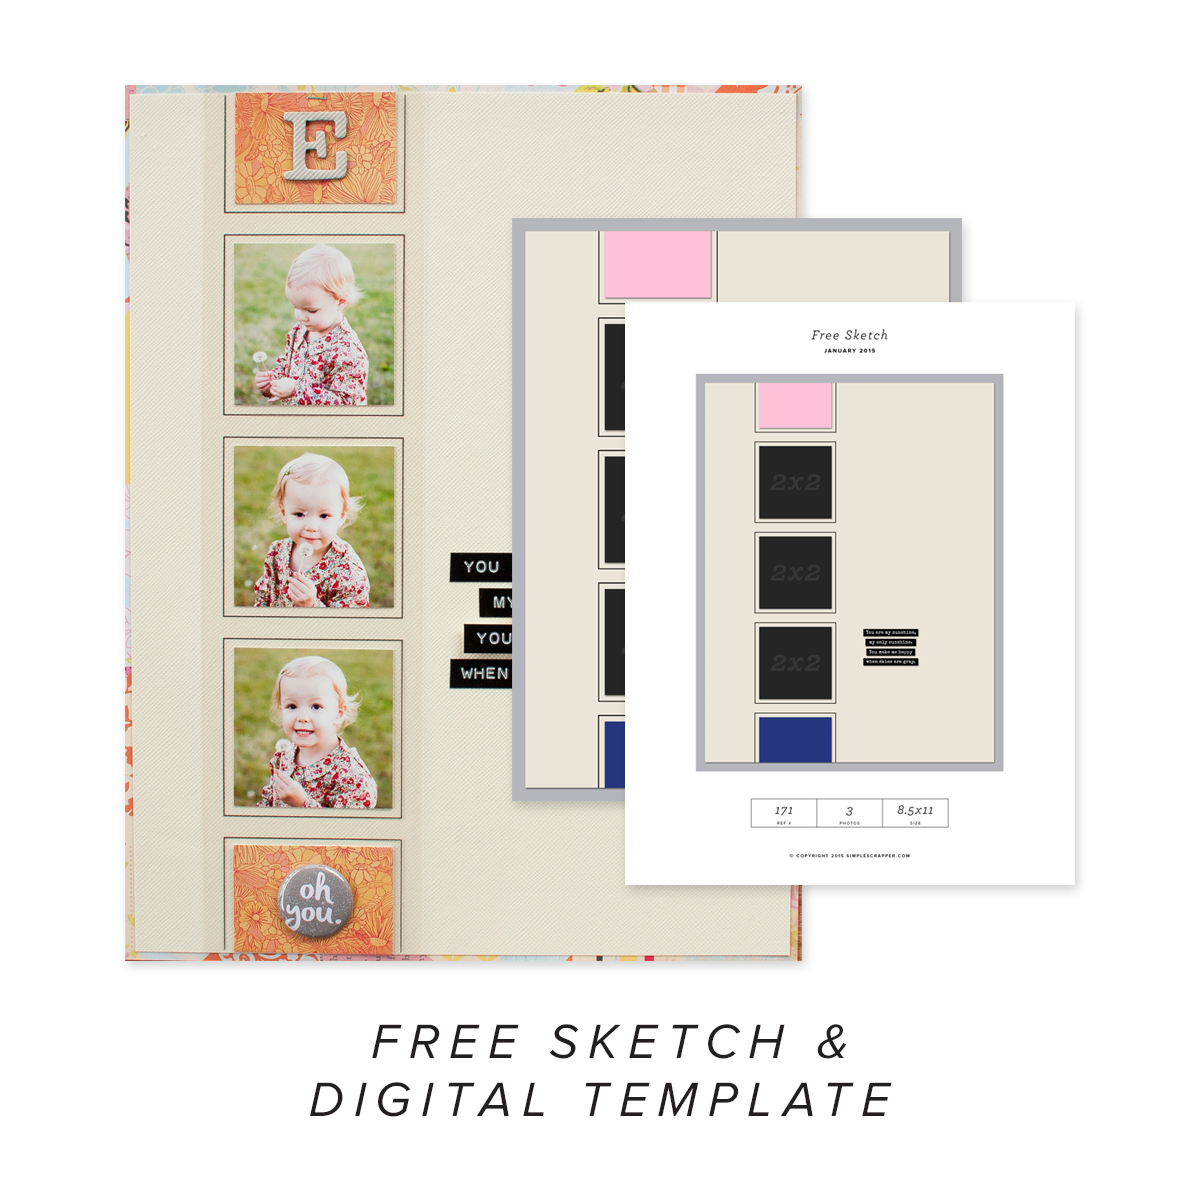 October Free Sketch & Template